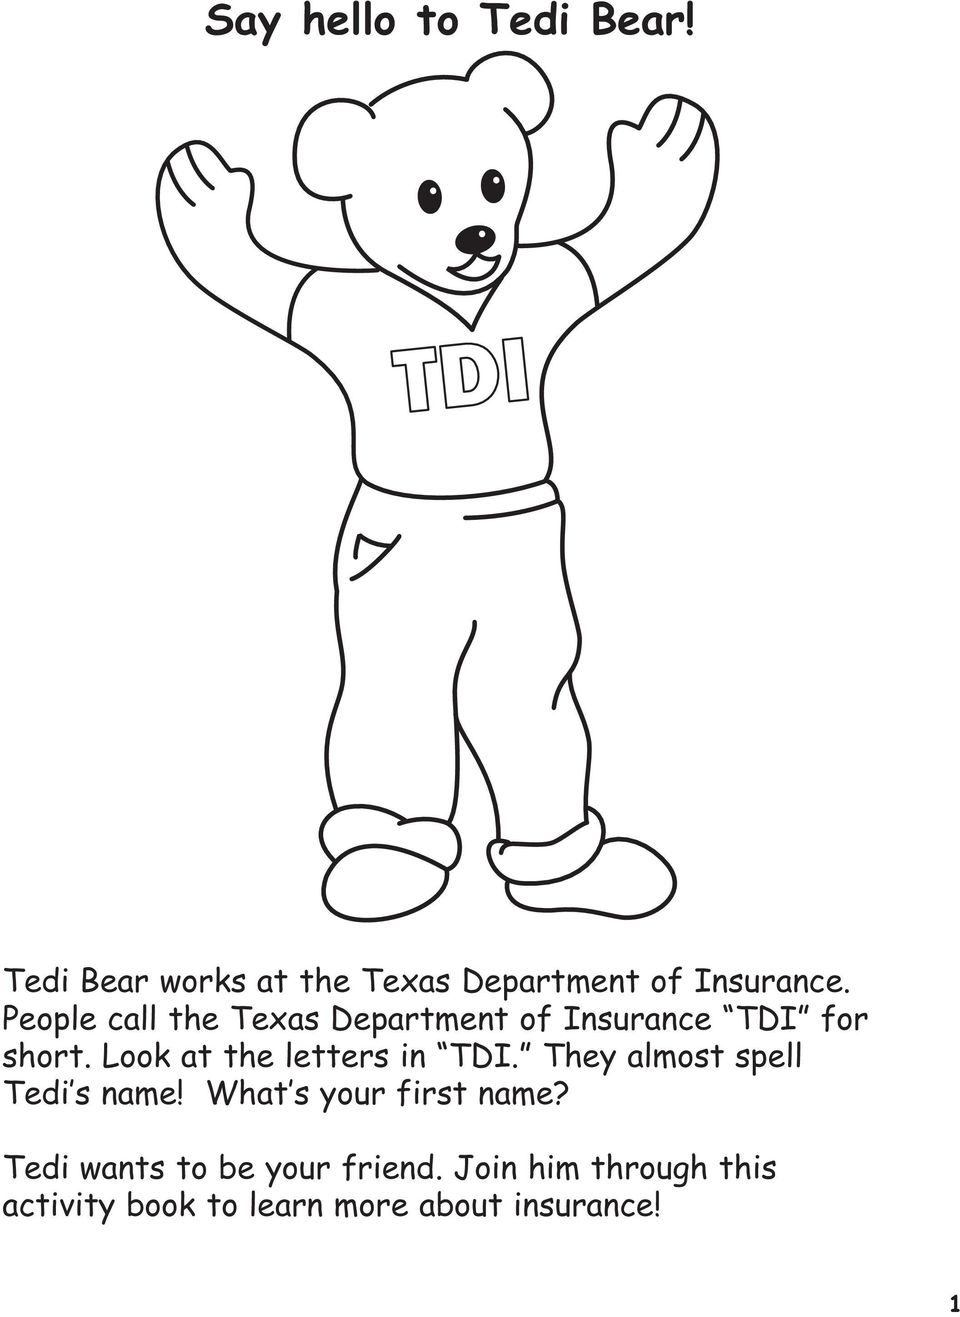 Look at the letters in TDI. They almost spell Tedi s name!